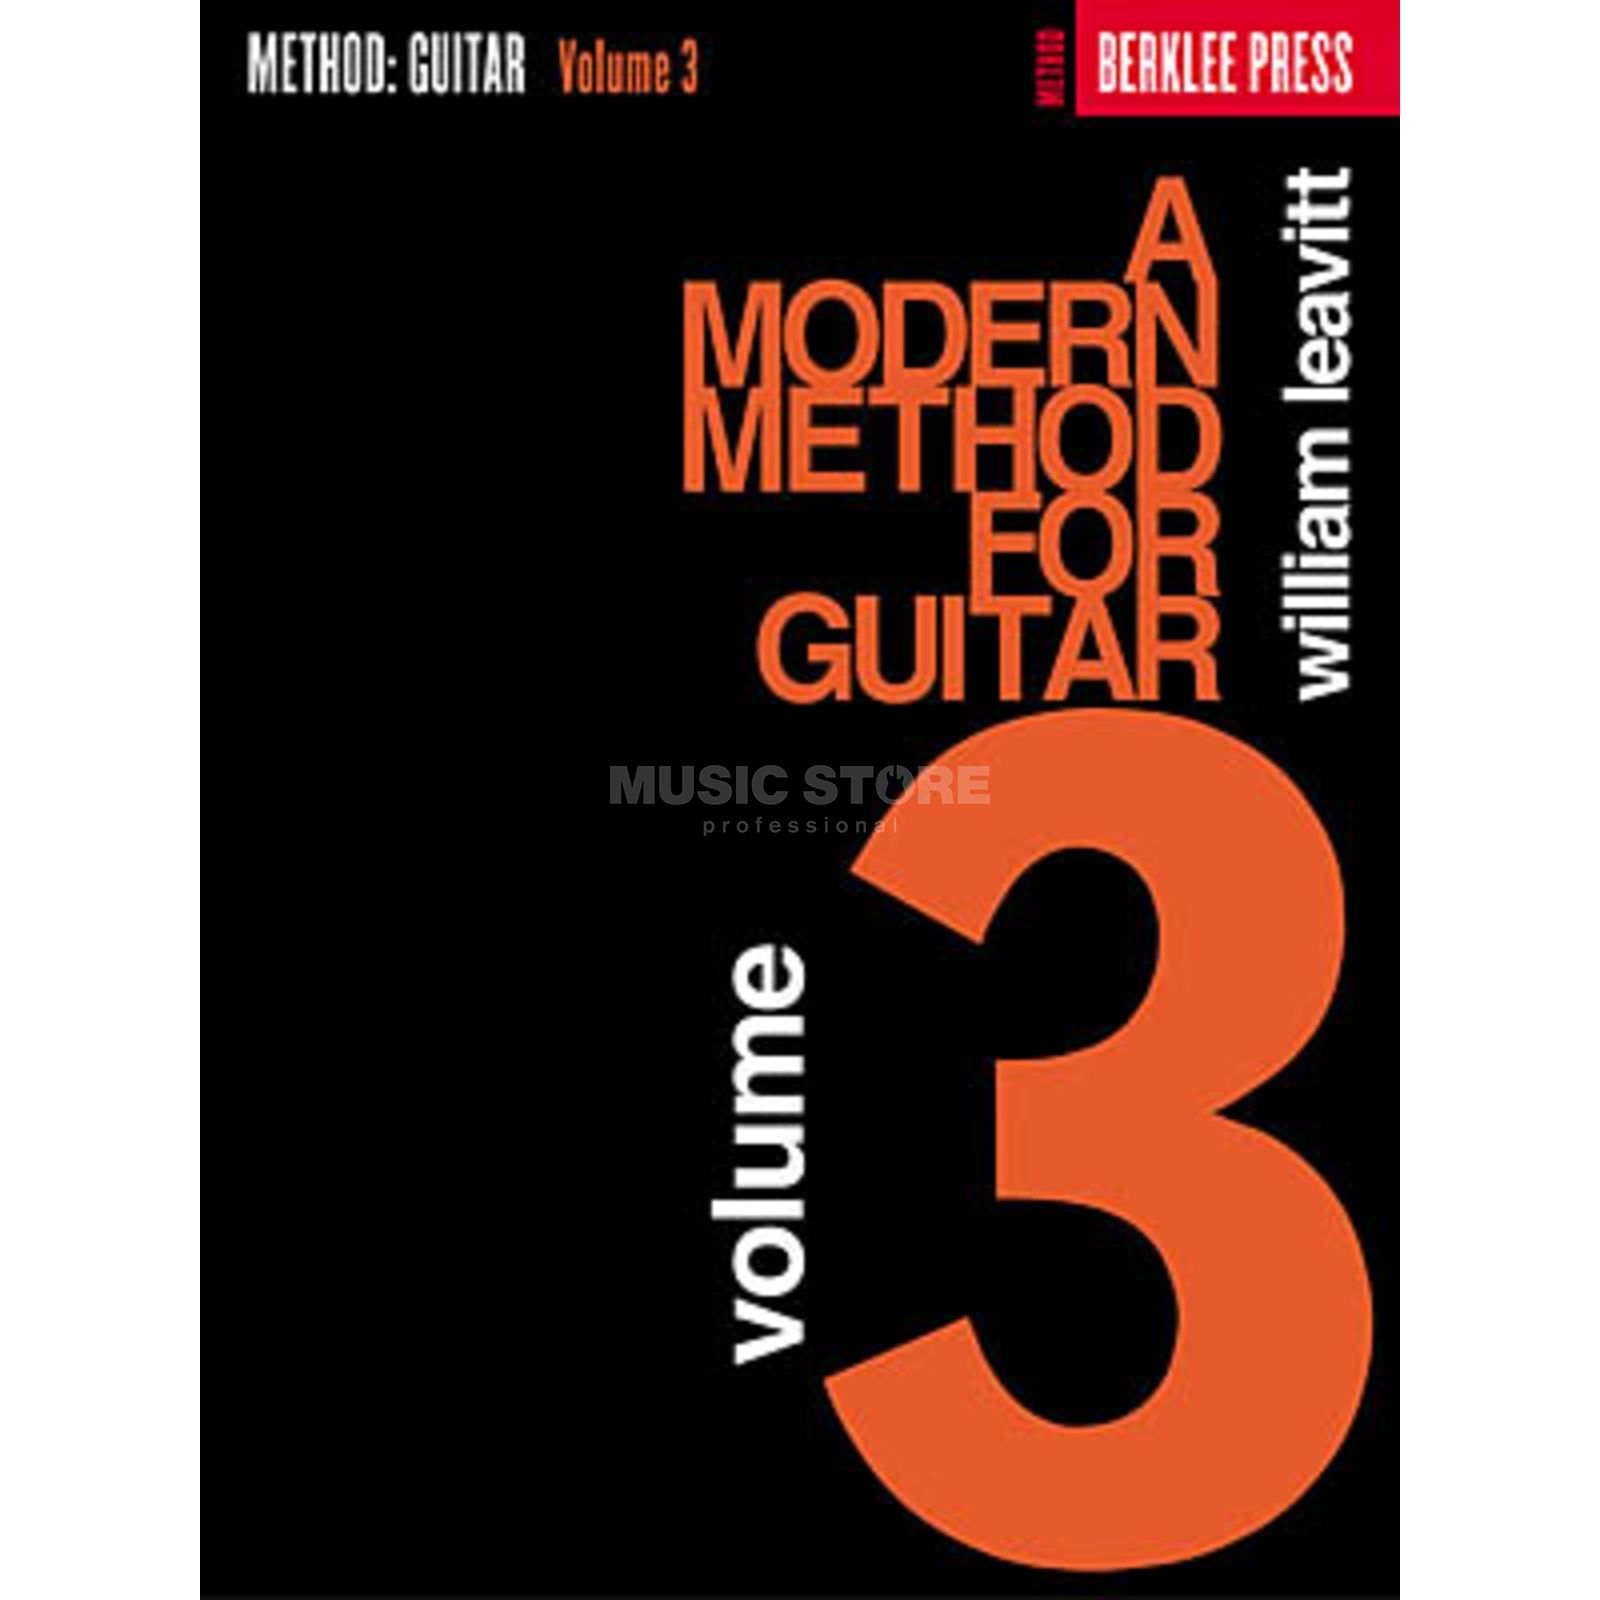 Hal Leonard A Modern Method for Guitar 3 William Leavitt Produktbillede